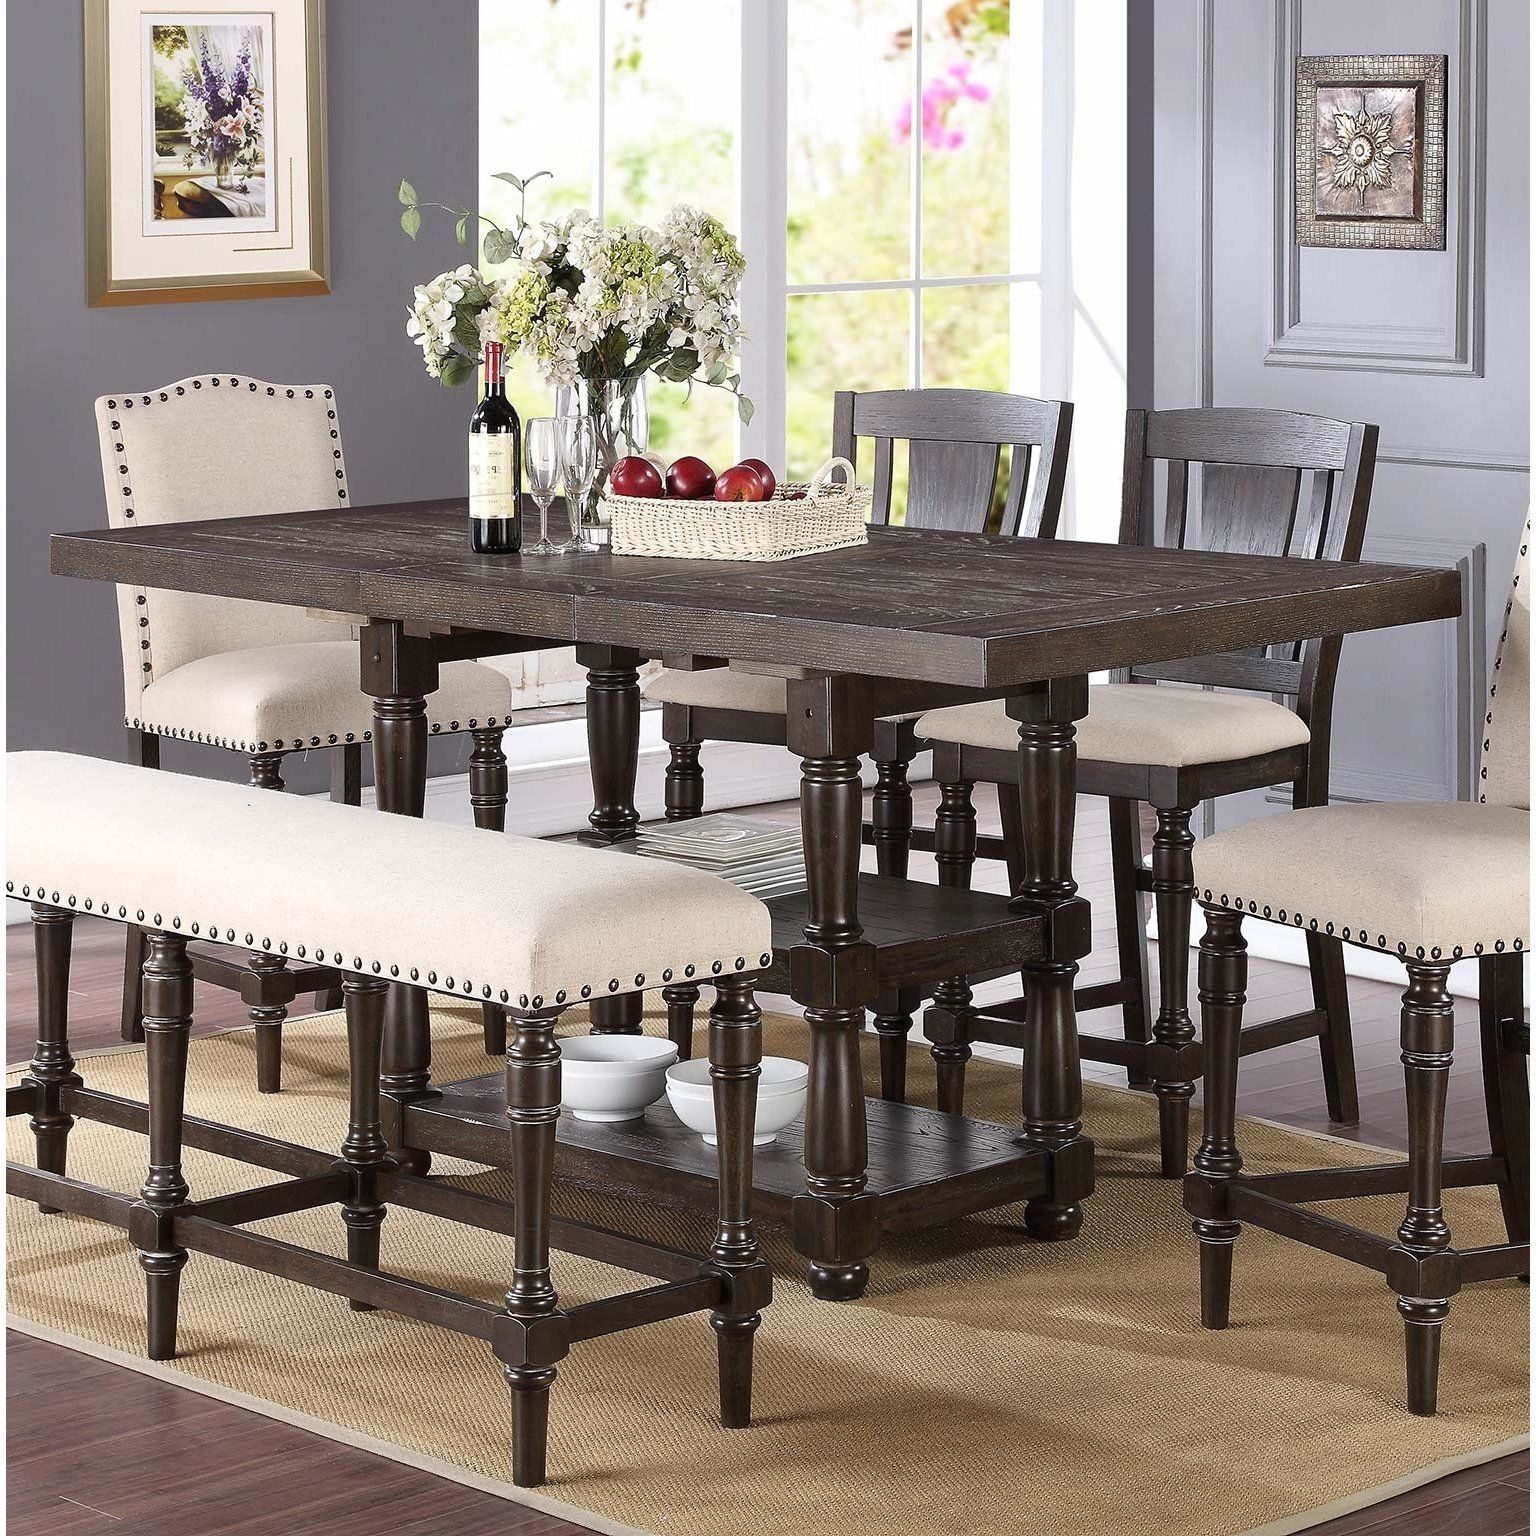 Fortunat Counter Height Extendable Dining Table | Kitchen/dining With Regard To 2017 Ina Pewter 60 Inch Counter Tables With Frosted Glass (Photo 9 of 20)